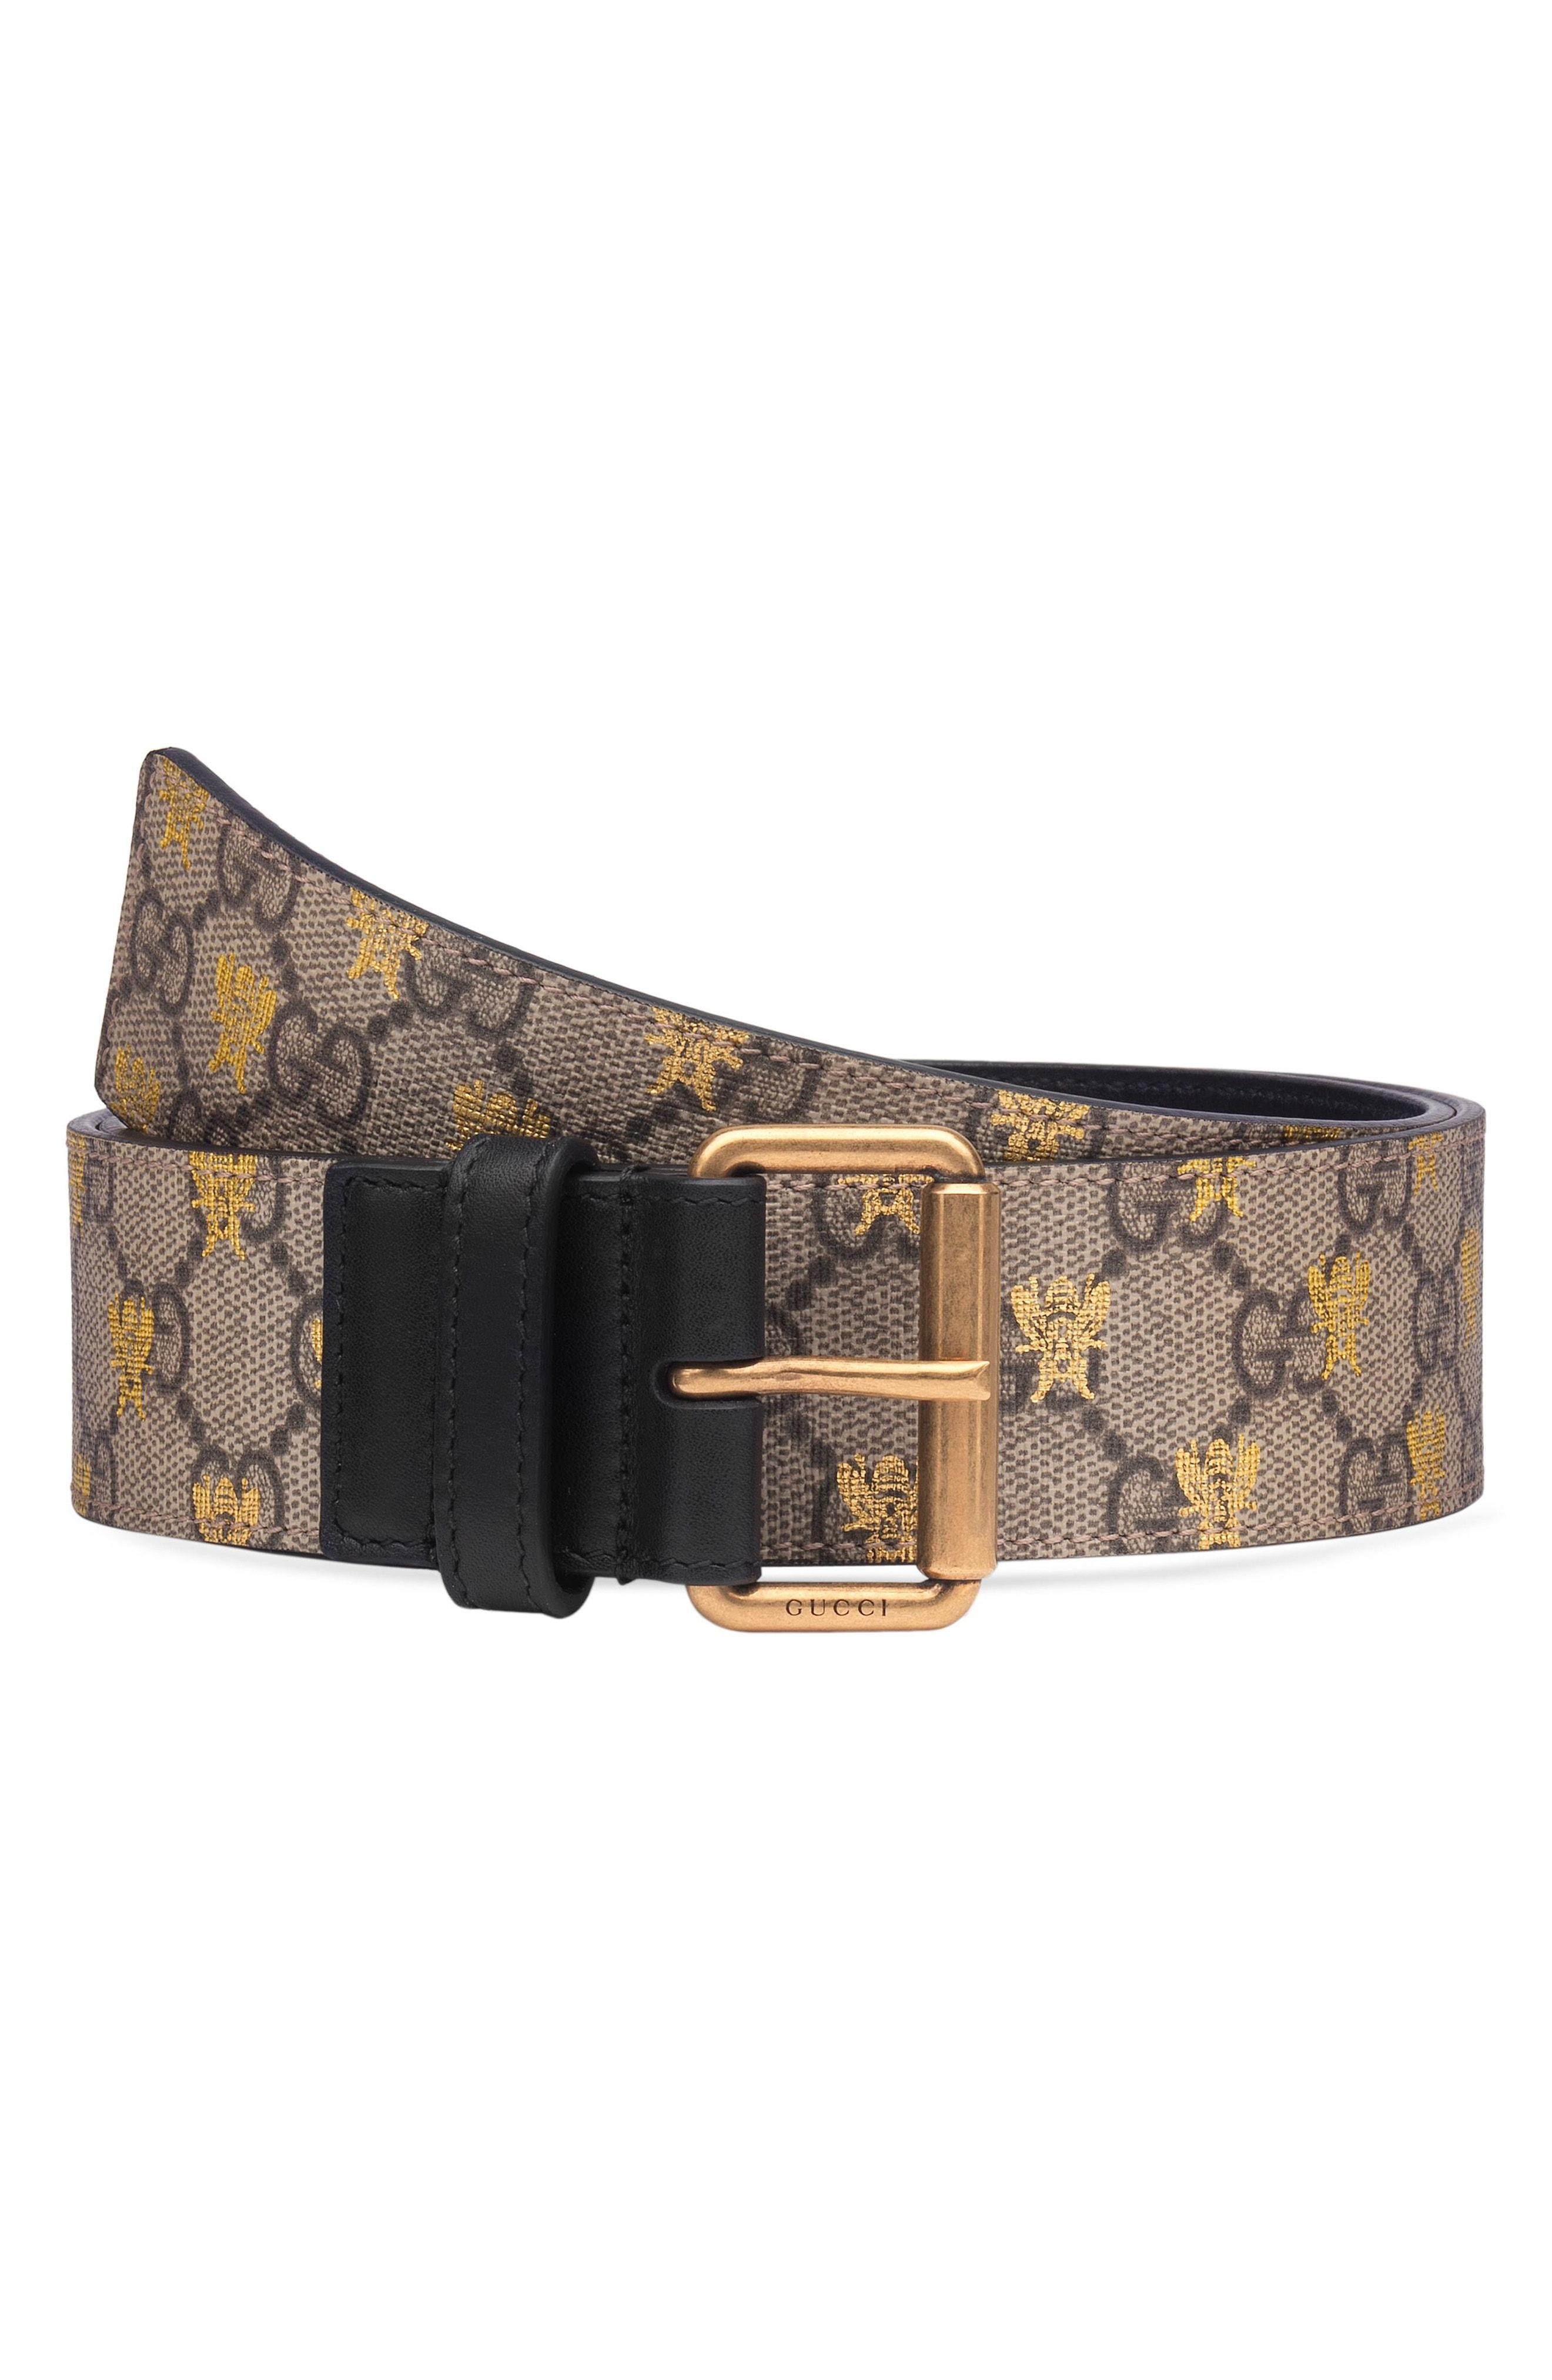 30a37e5ca Gucci Formal Squared Gg Supreme Canvas Bee Belt In Beige Ebony/ Nero ...